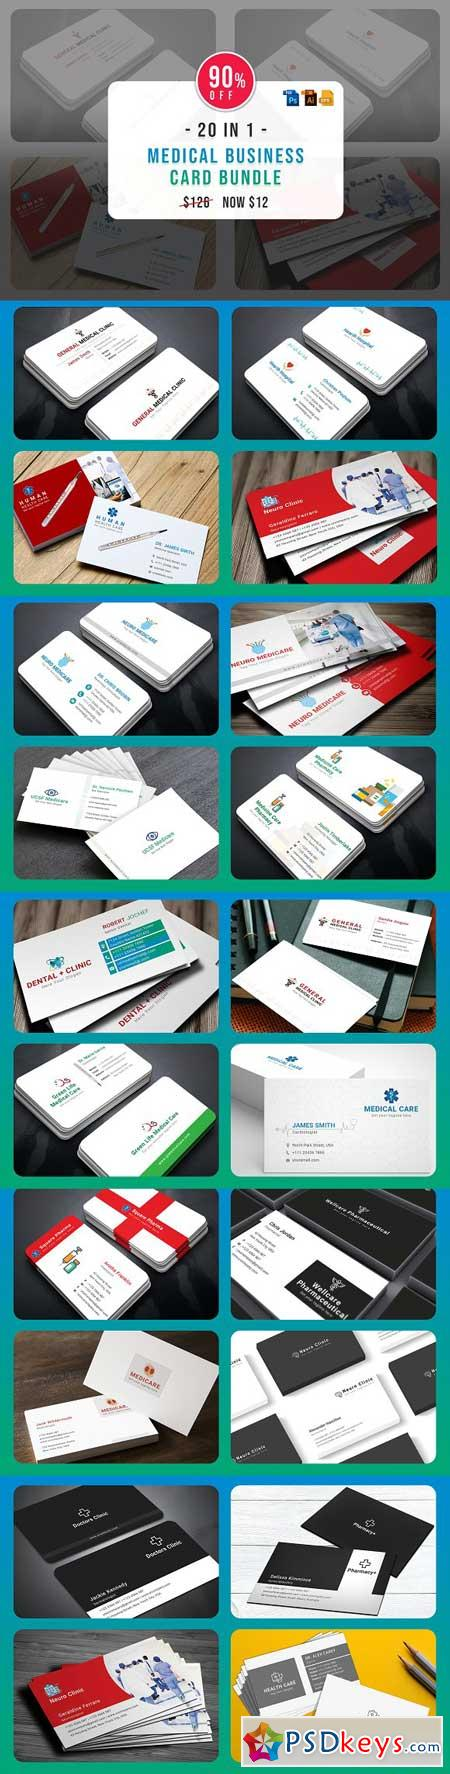 Medical Business Cards Bundle 3251021